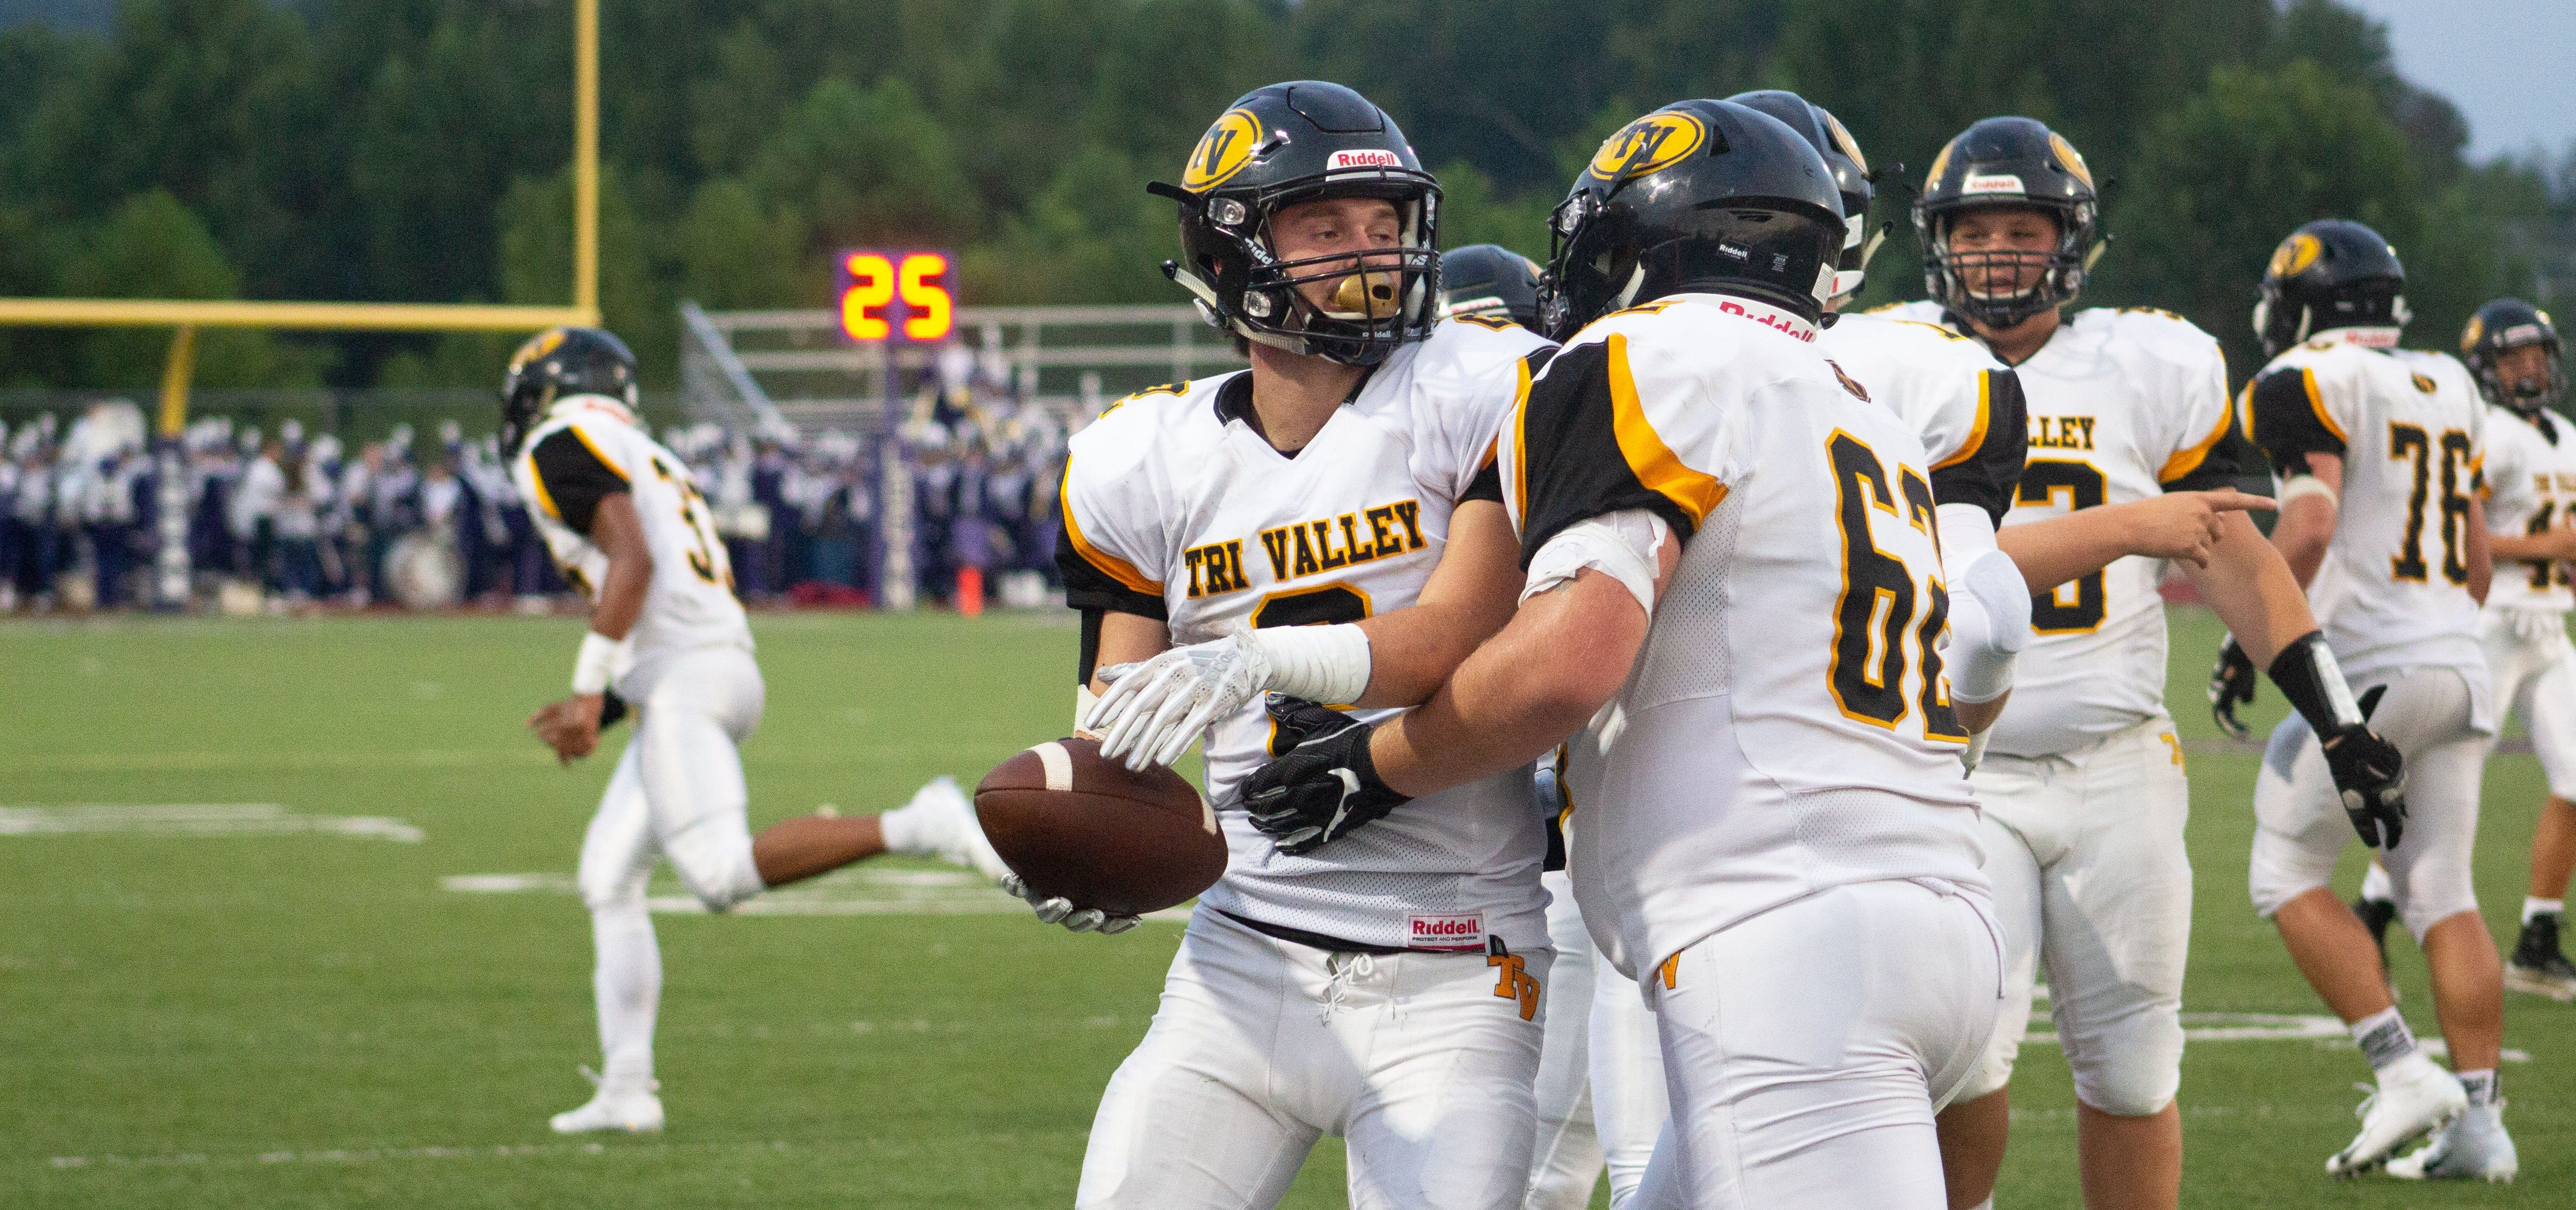 Tri Valley Scotties finish a play.